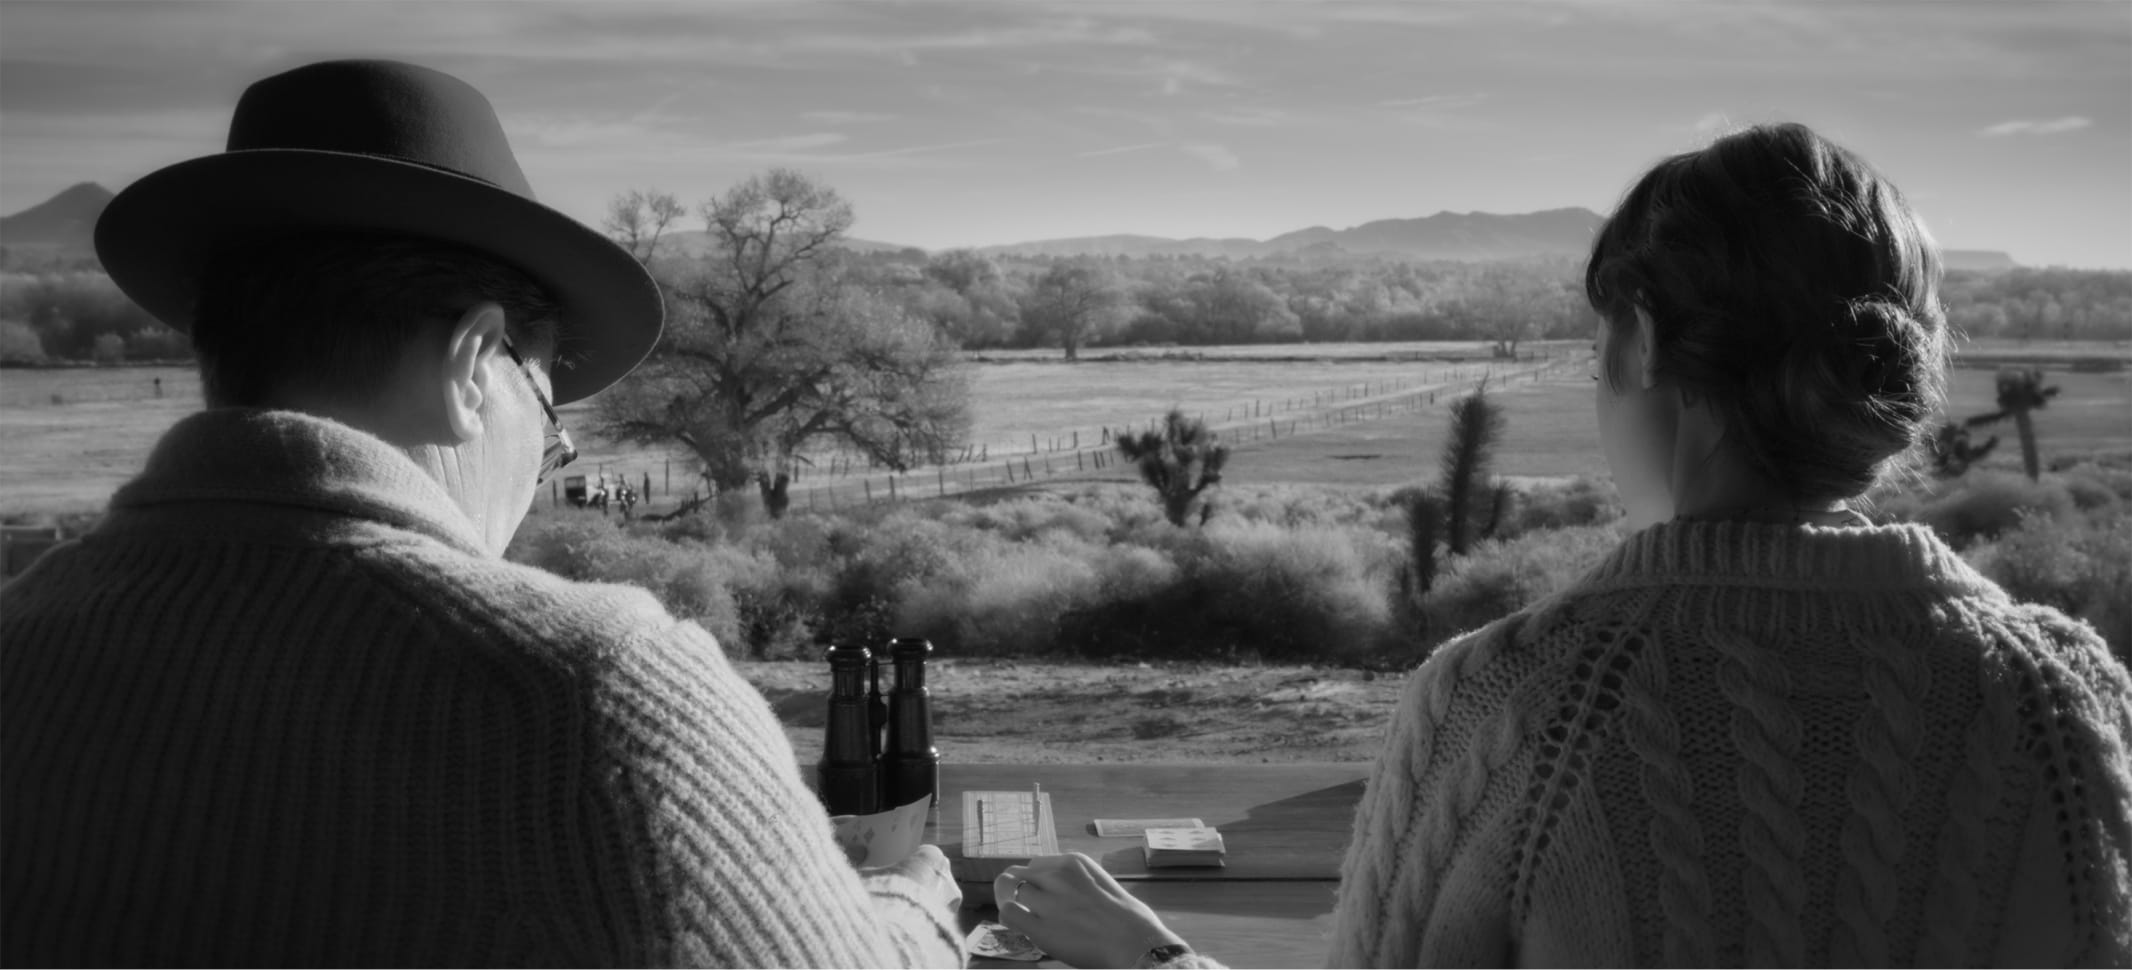 In a shot from the film, we see how the scene above translates to a black-and-white experience. The dusky landscape is a study in grays, and the textures of Oldman's and Collins's cable-knit sweaters jump from the screen.